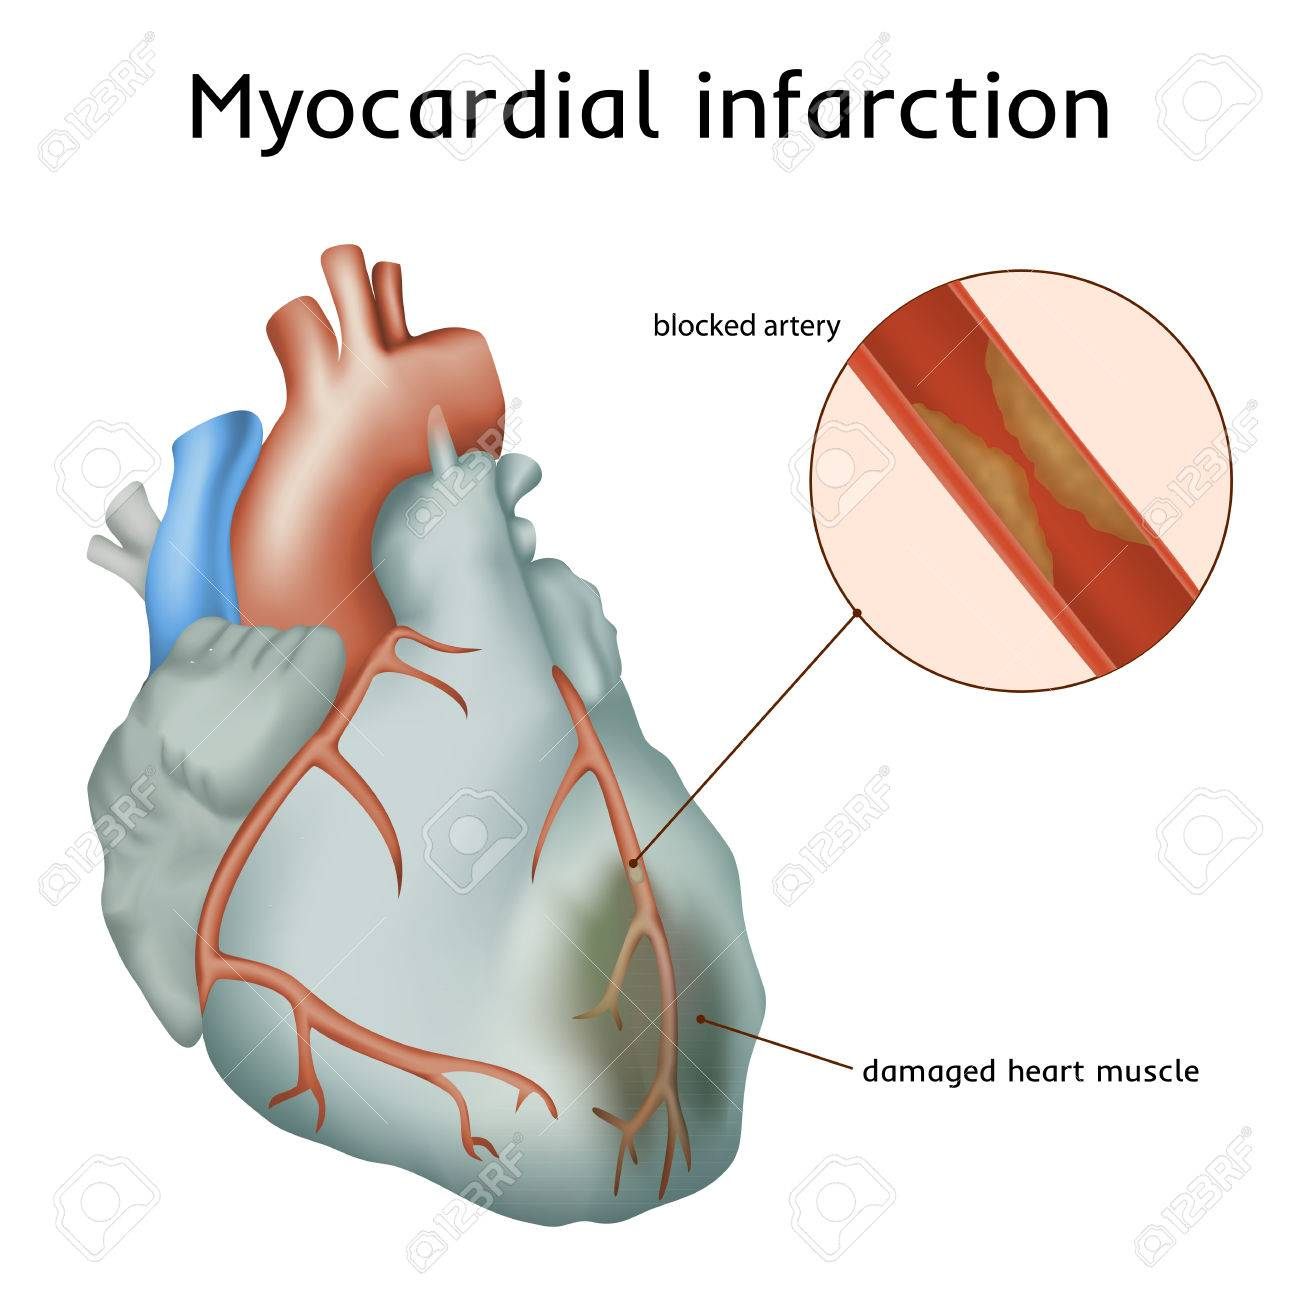 Image result for myocardial infarction